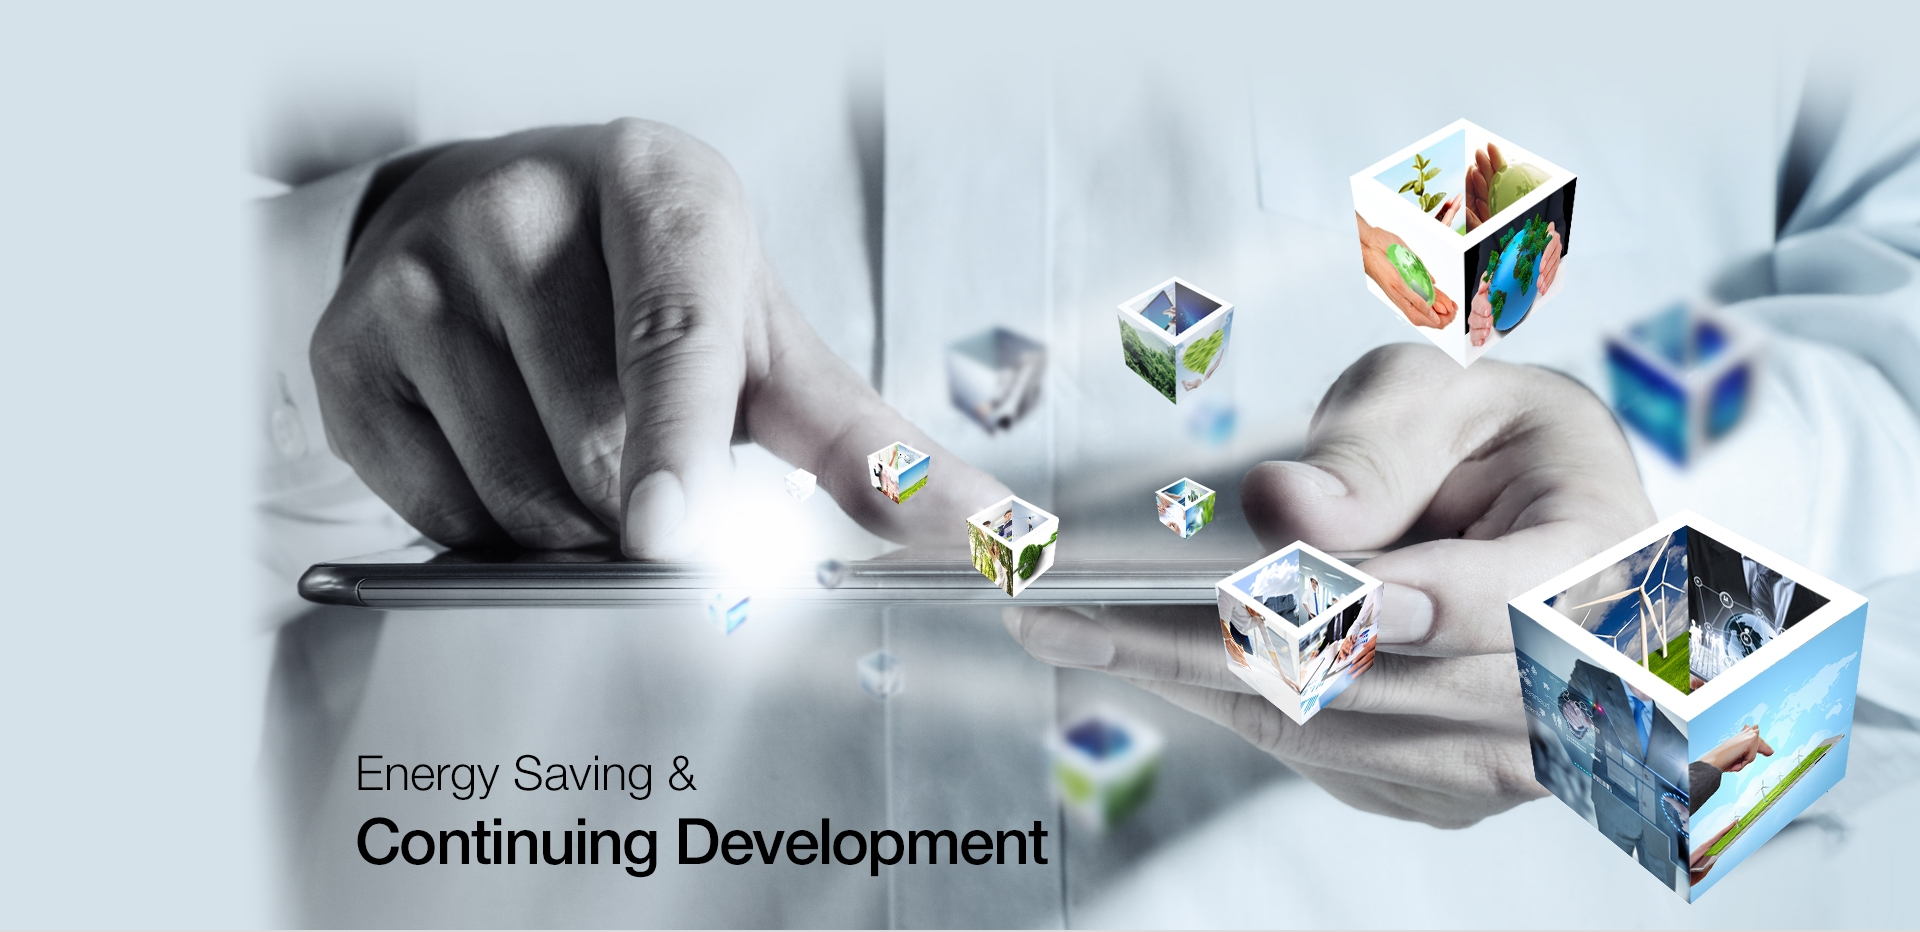 Energy Saving &Continuing Development